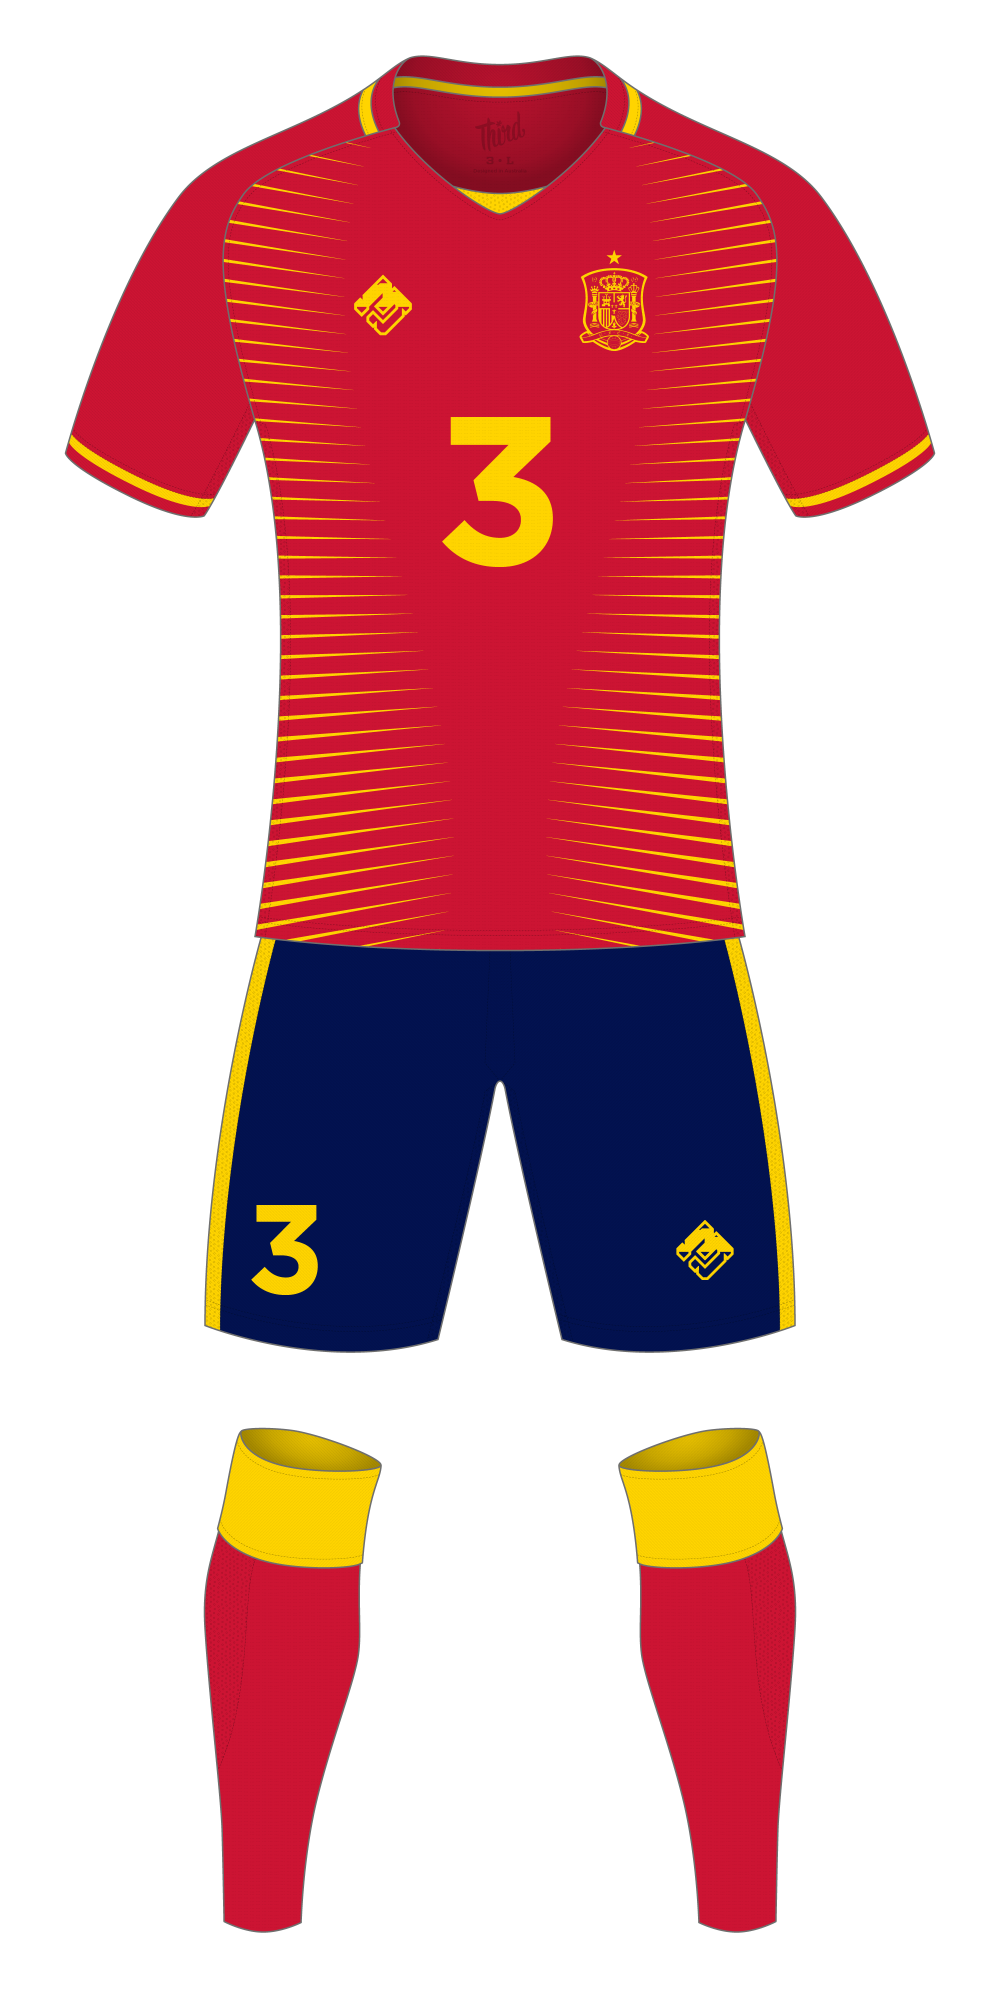 Spain World Cup 2018 concept